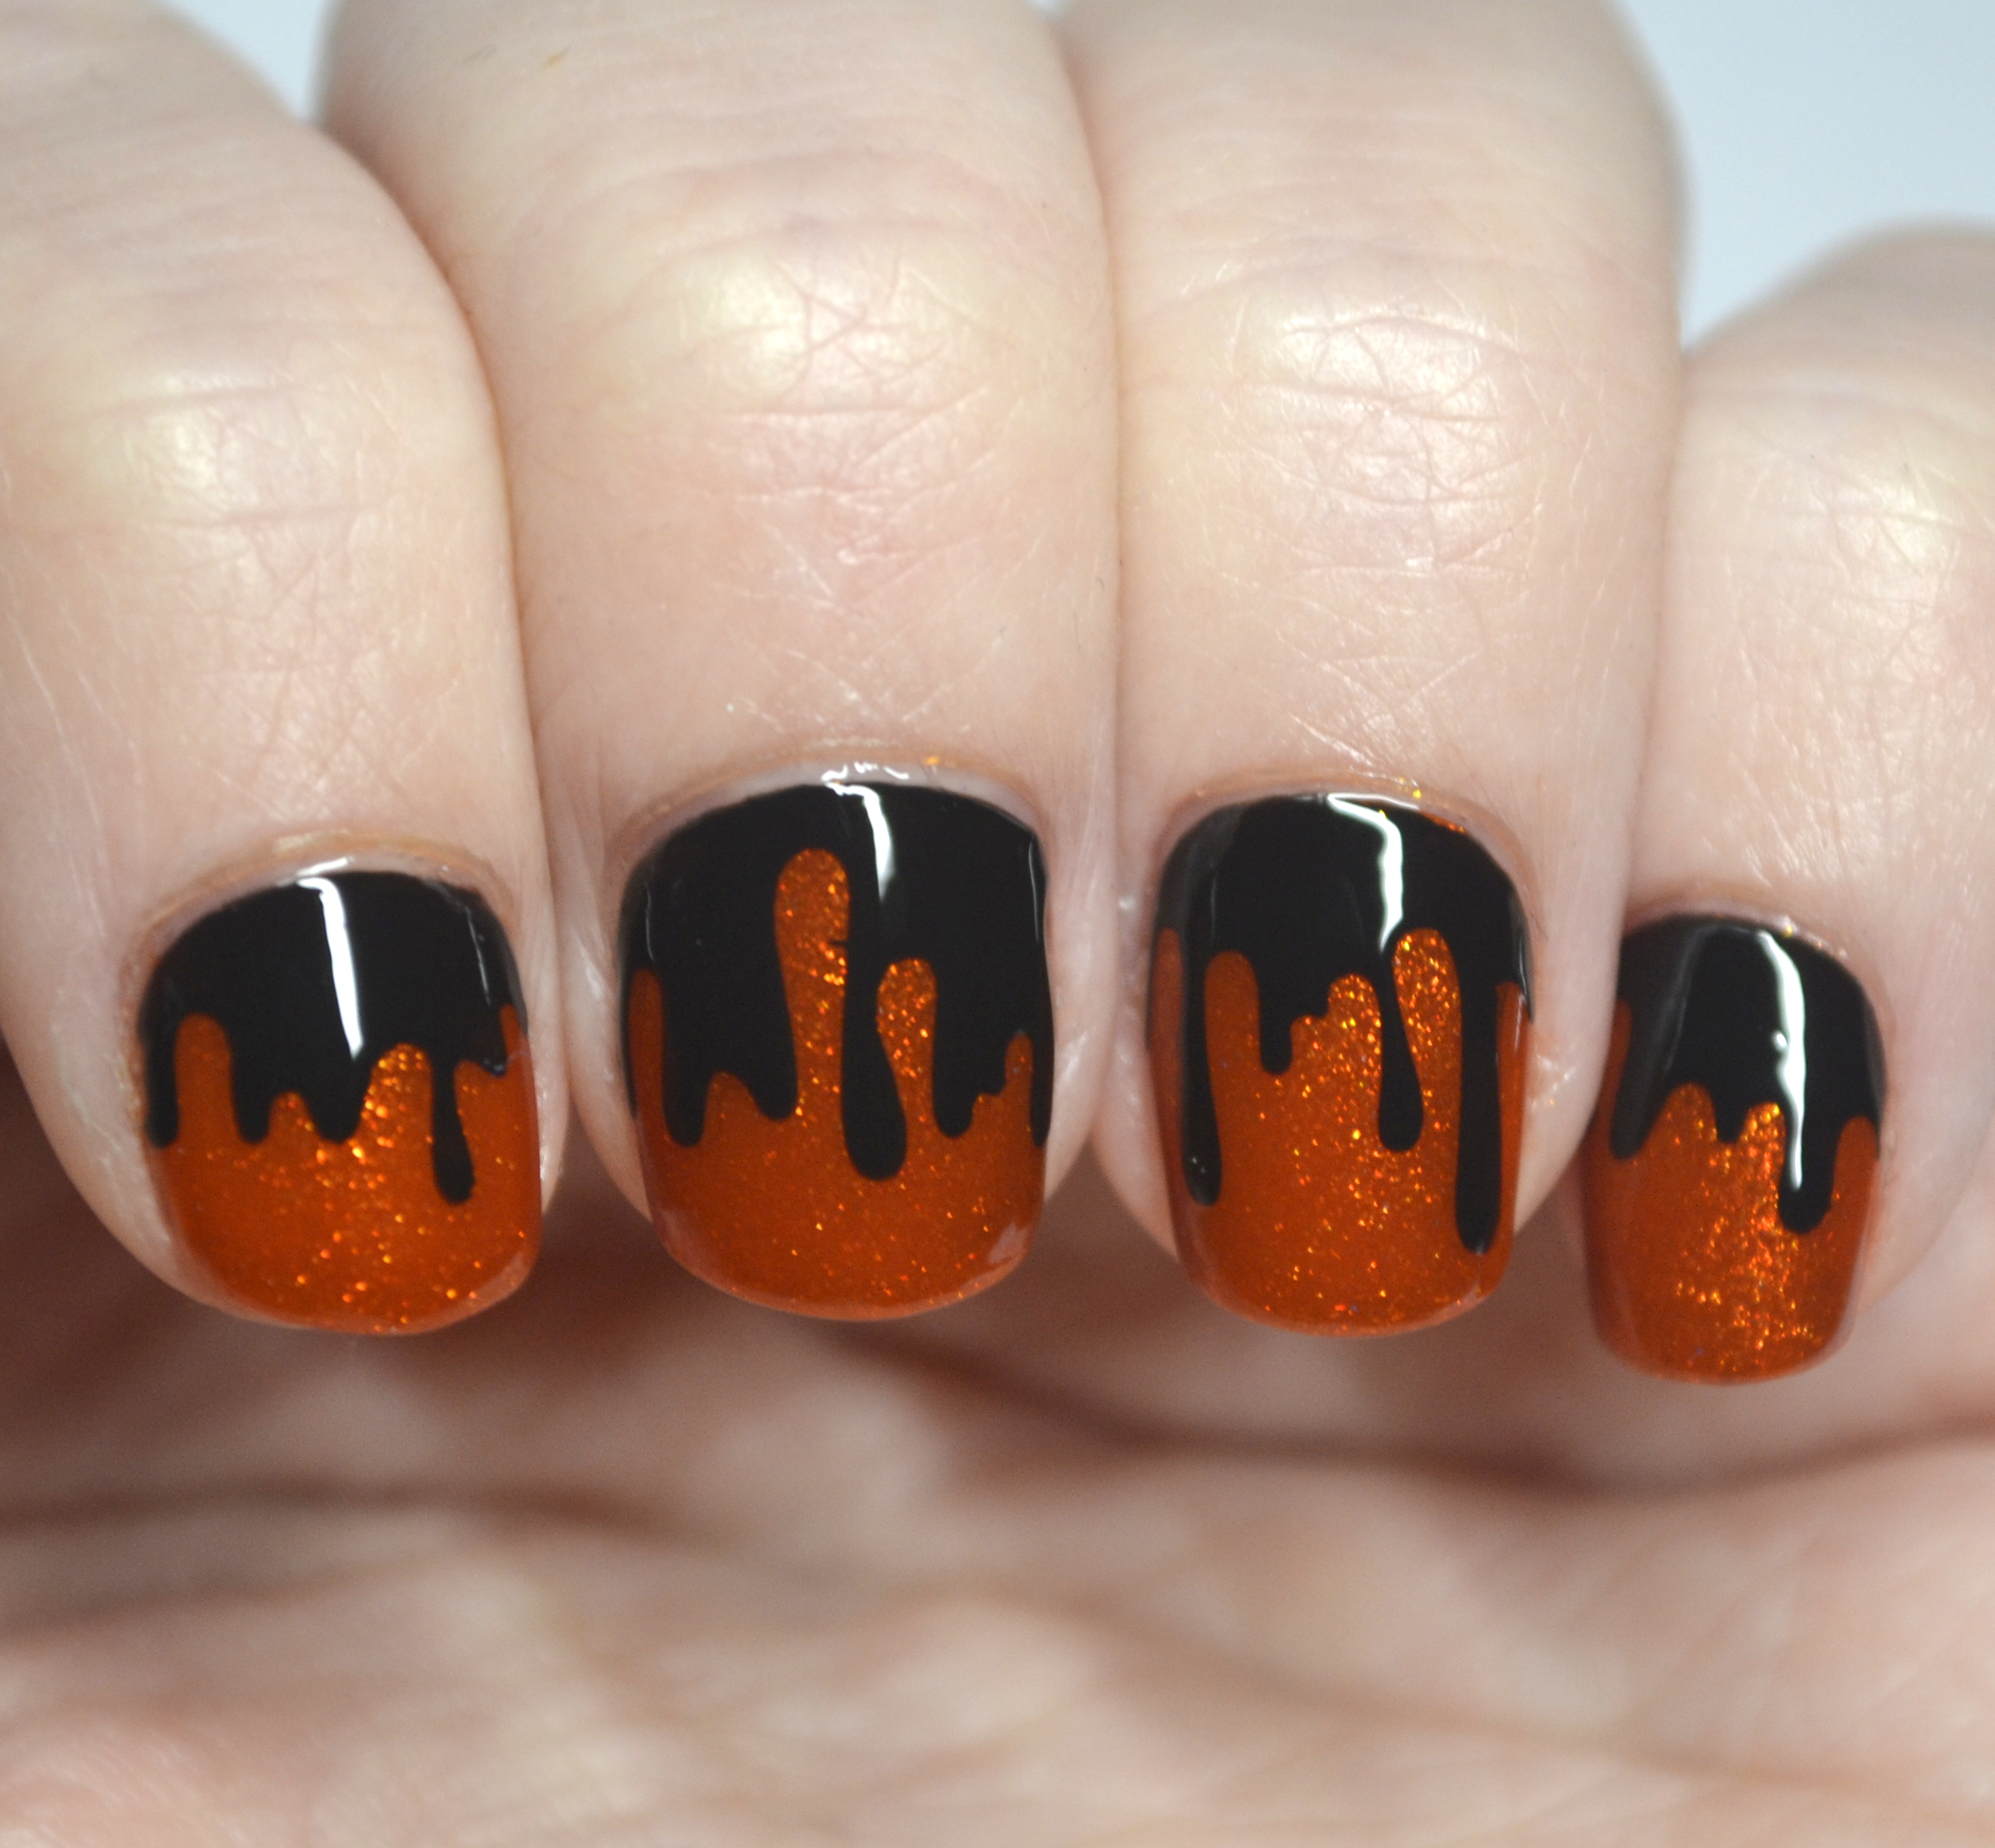 Nails, the Final Frontier | These are the voyages of the starship ...